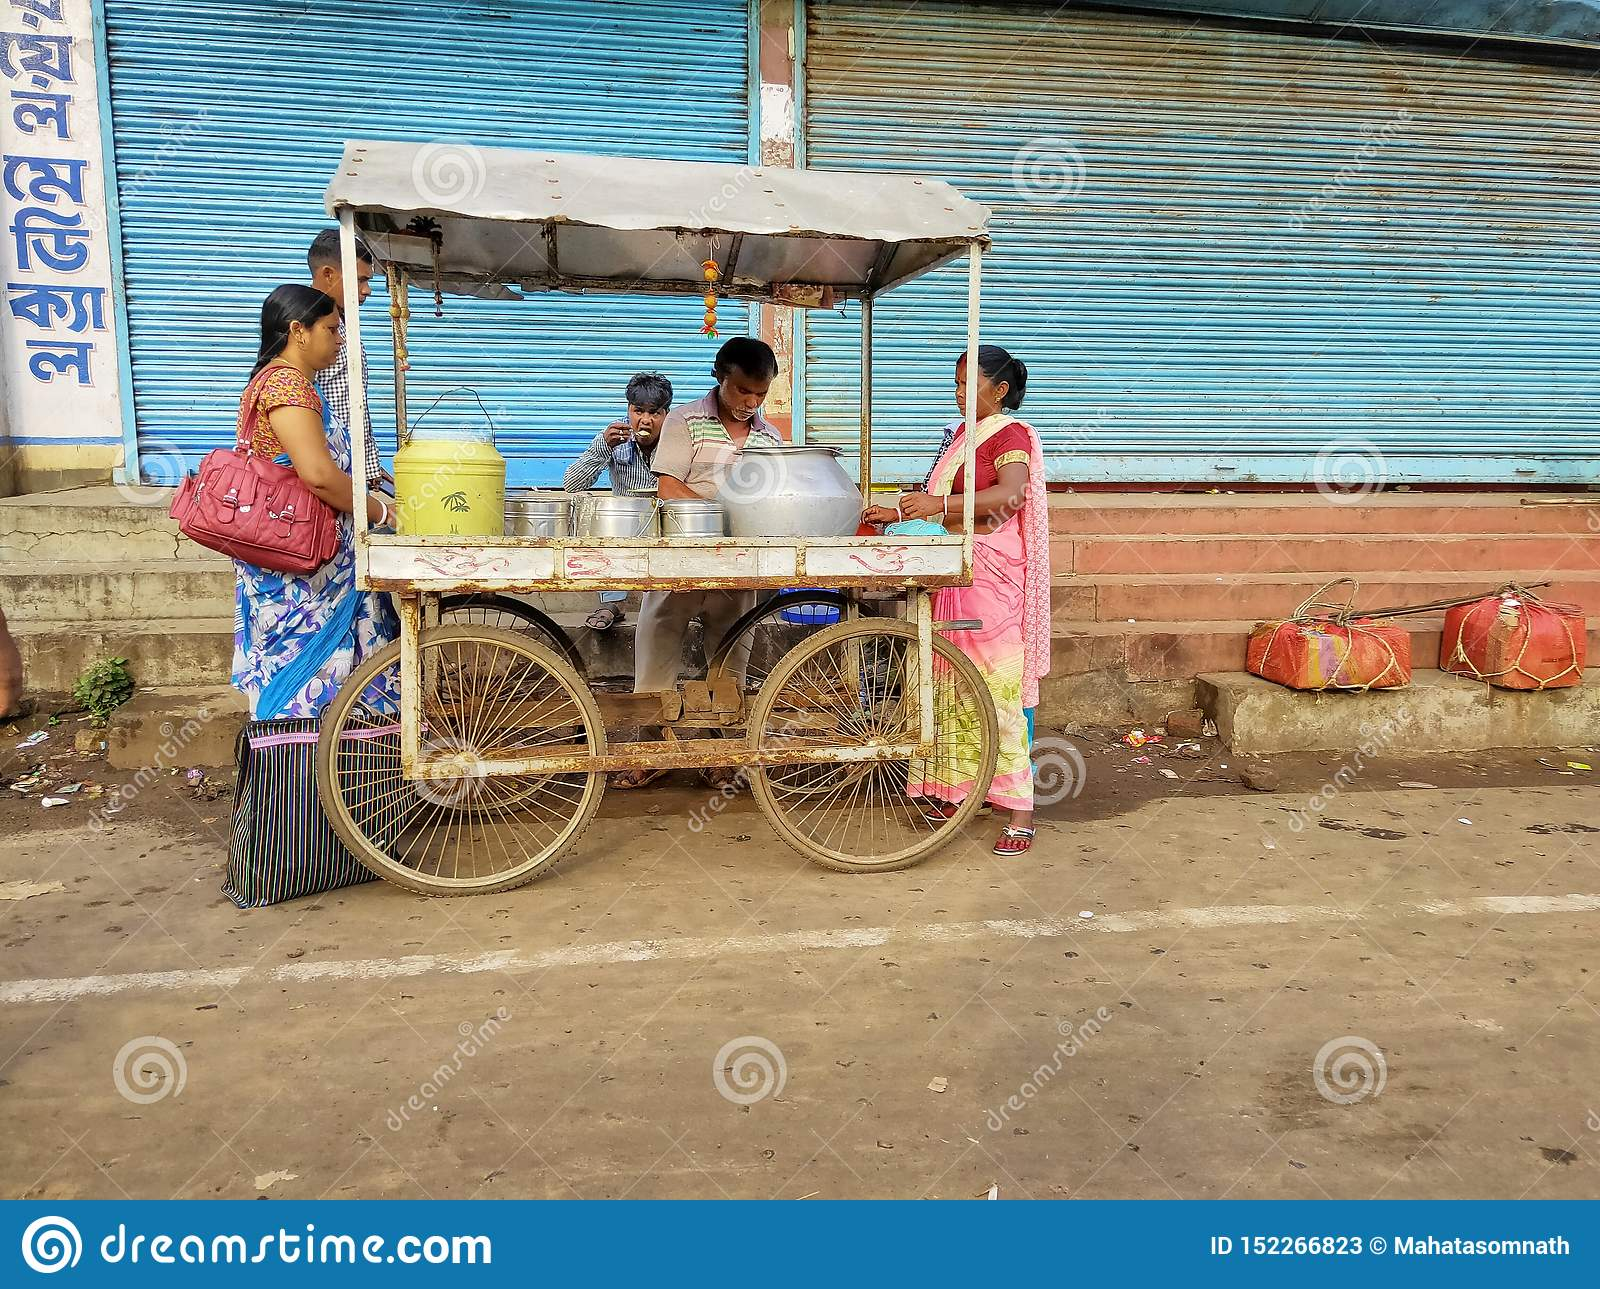 Jhargram, West Bengal, India - May 05, 2018: a street food vendor was selling edli, a south Indian food bedside the